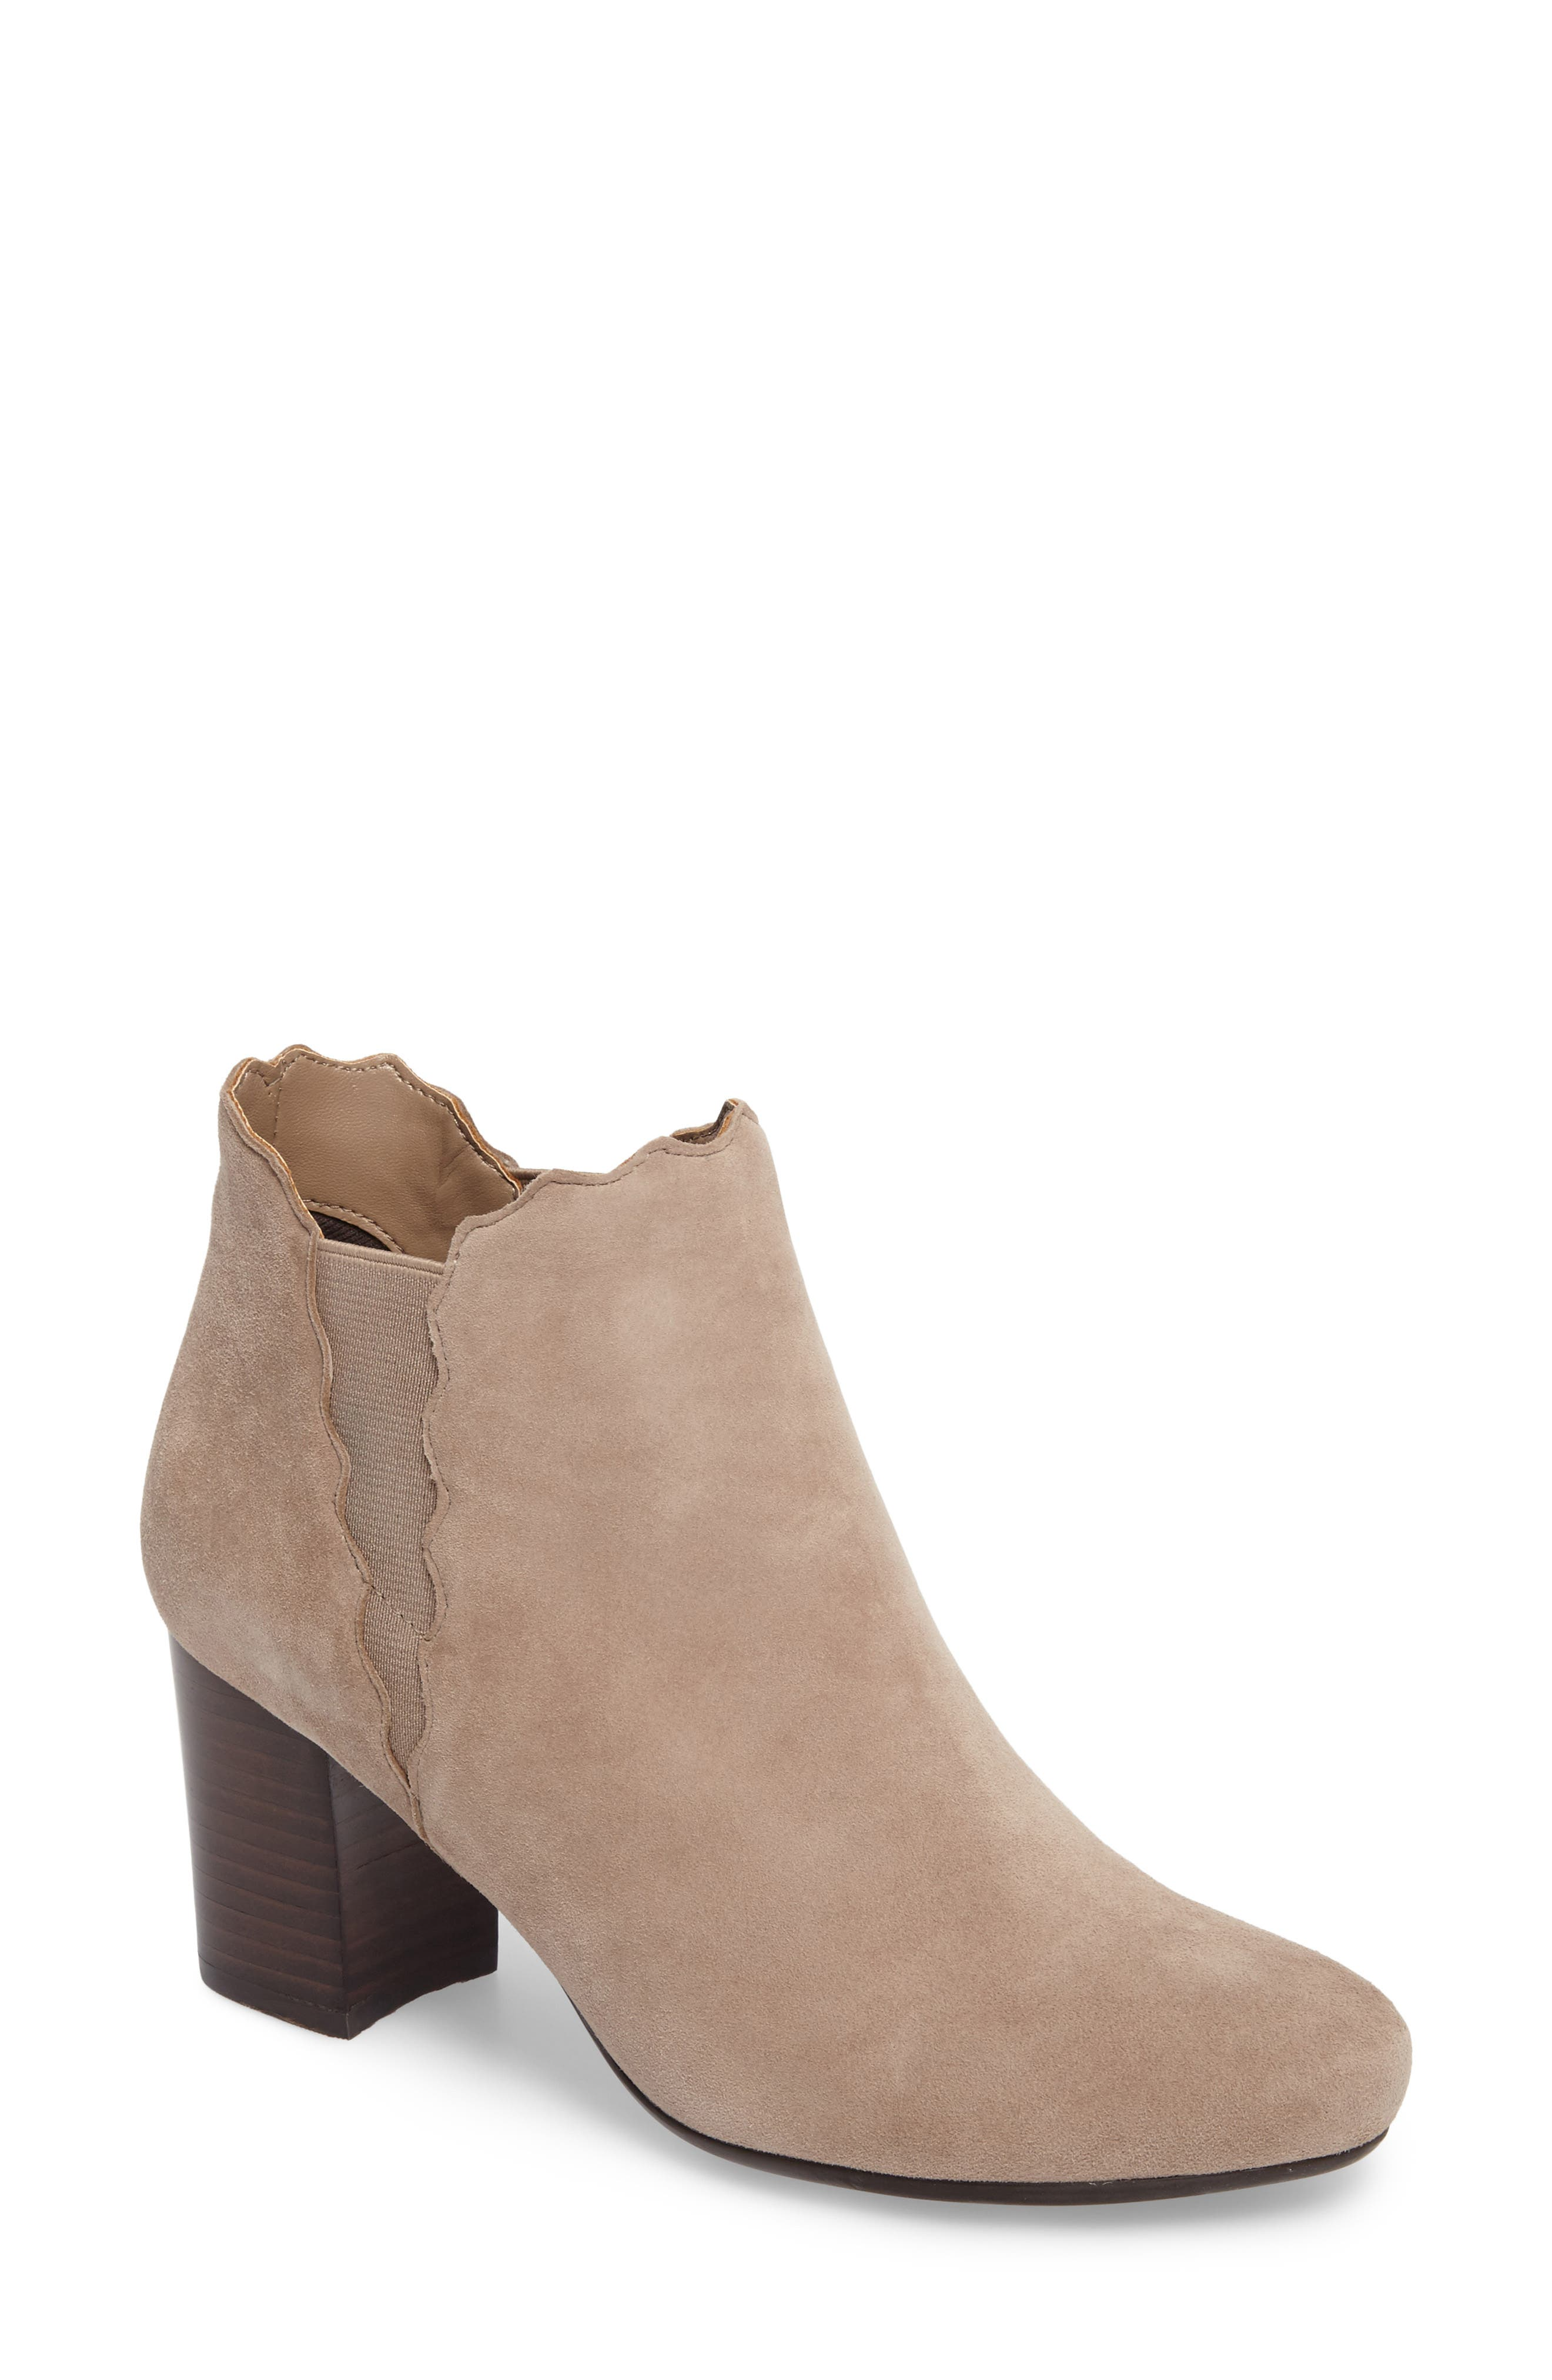 Alternate Image 1 Selected - VANELi Jabot Bootie (Women)